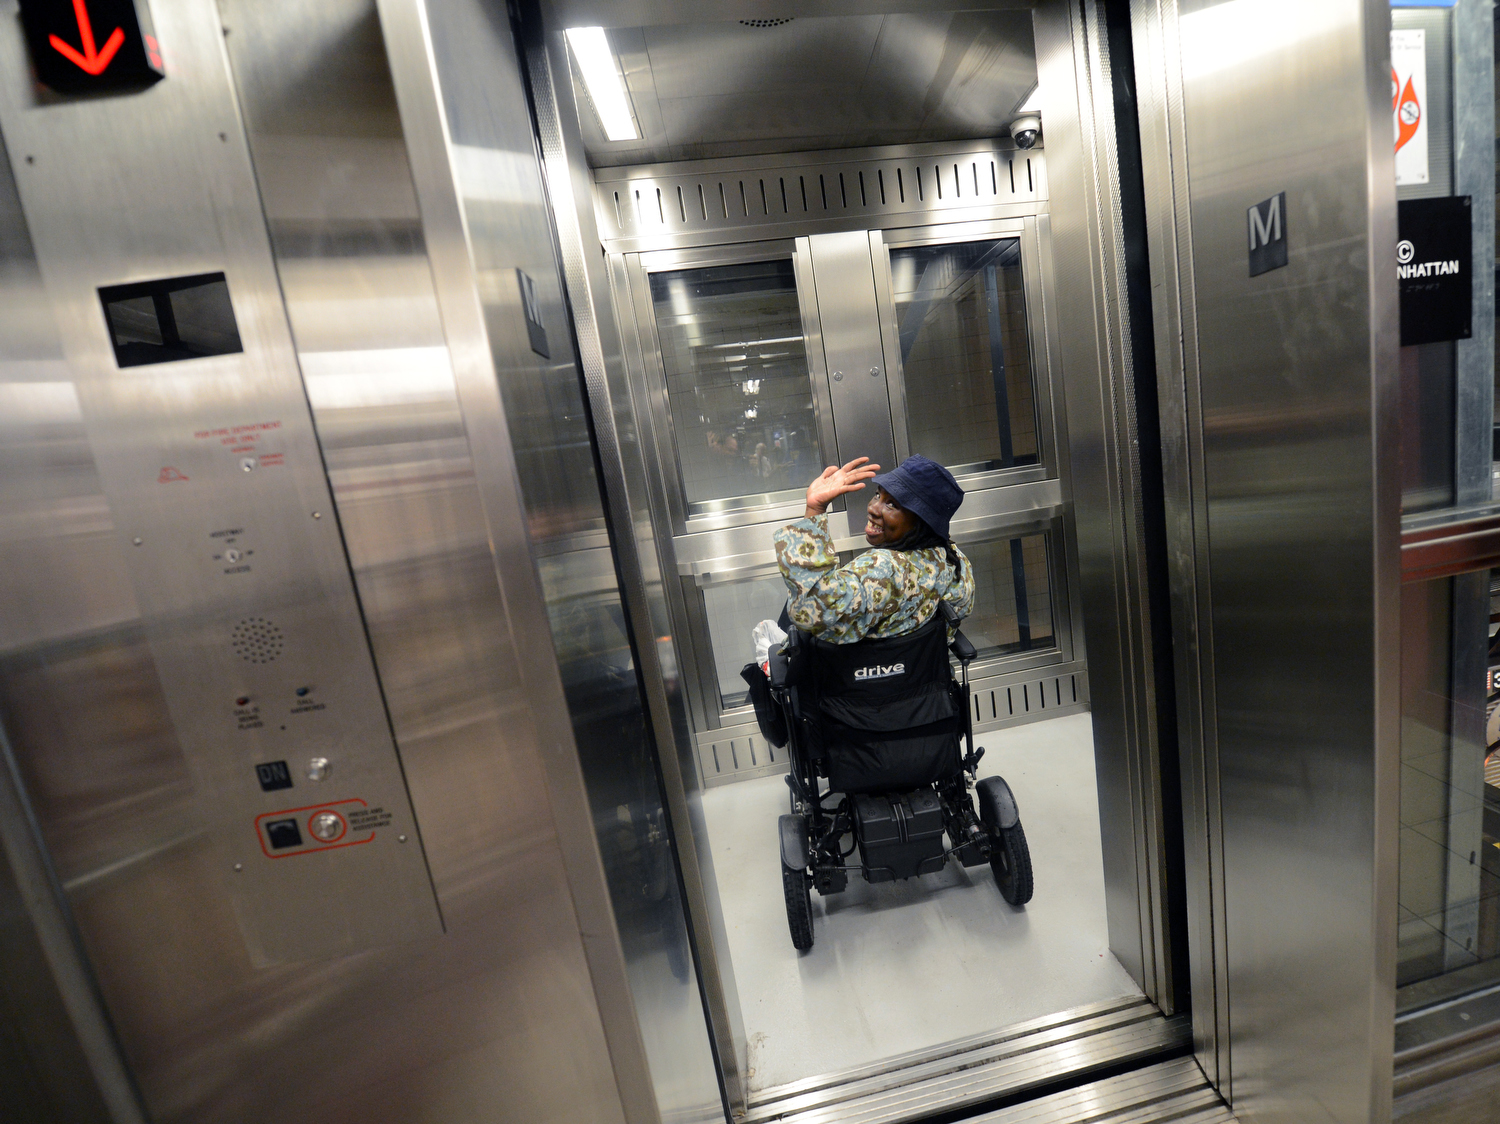 An individual in a wheelchair accesses the Utica Avenue subway station using an elevator. Such accessible subway stations are few and far between, according to a lawsuit filed against the MTA. Photo by Marc A. Herman/MTA New York City Transit via Flickr